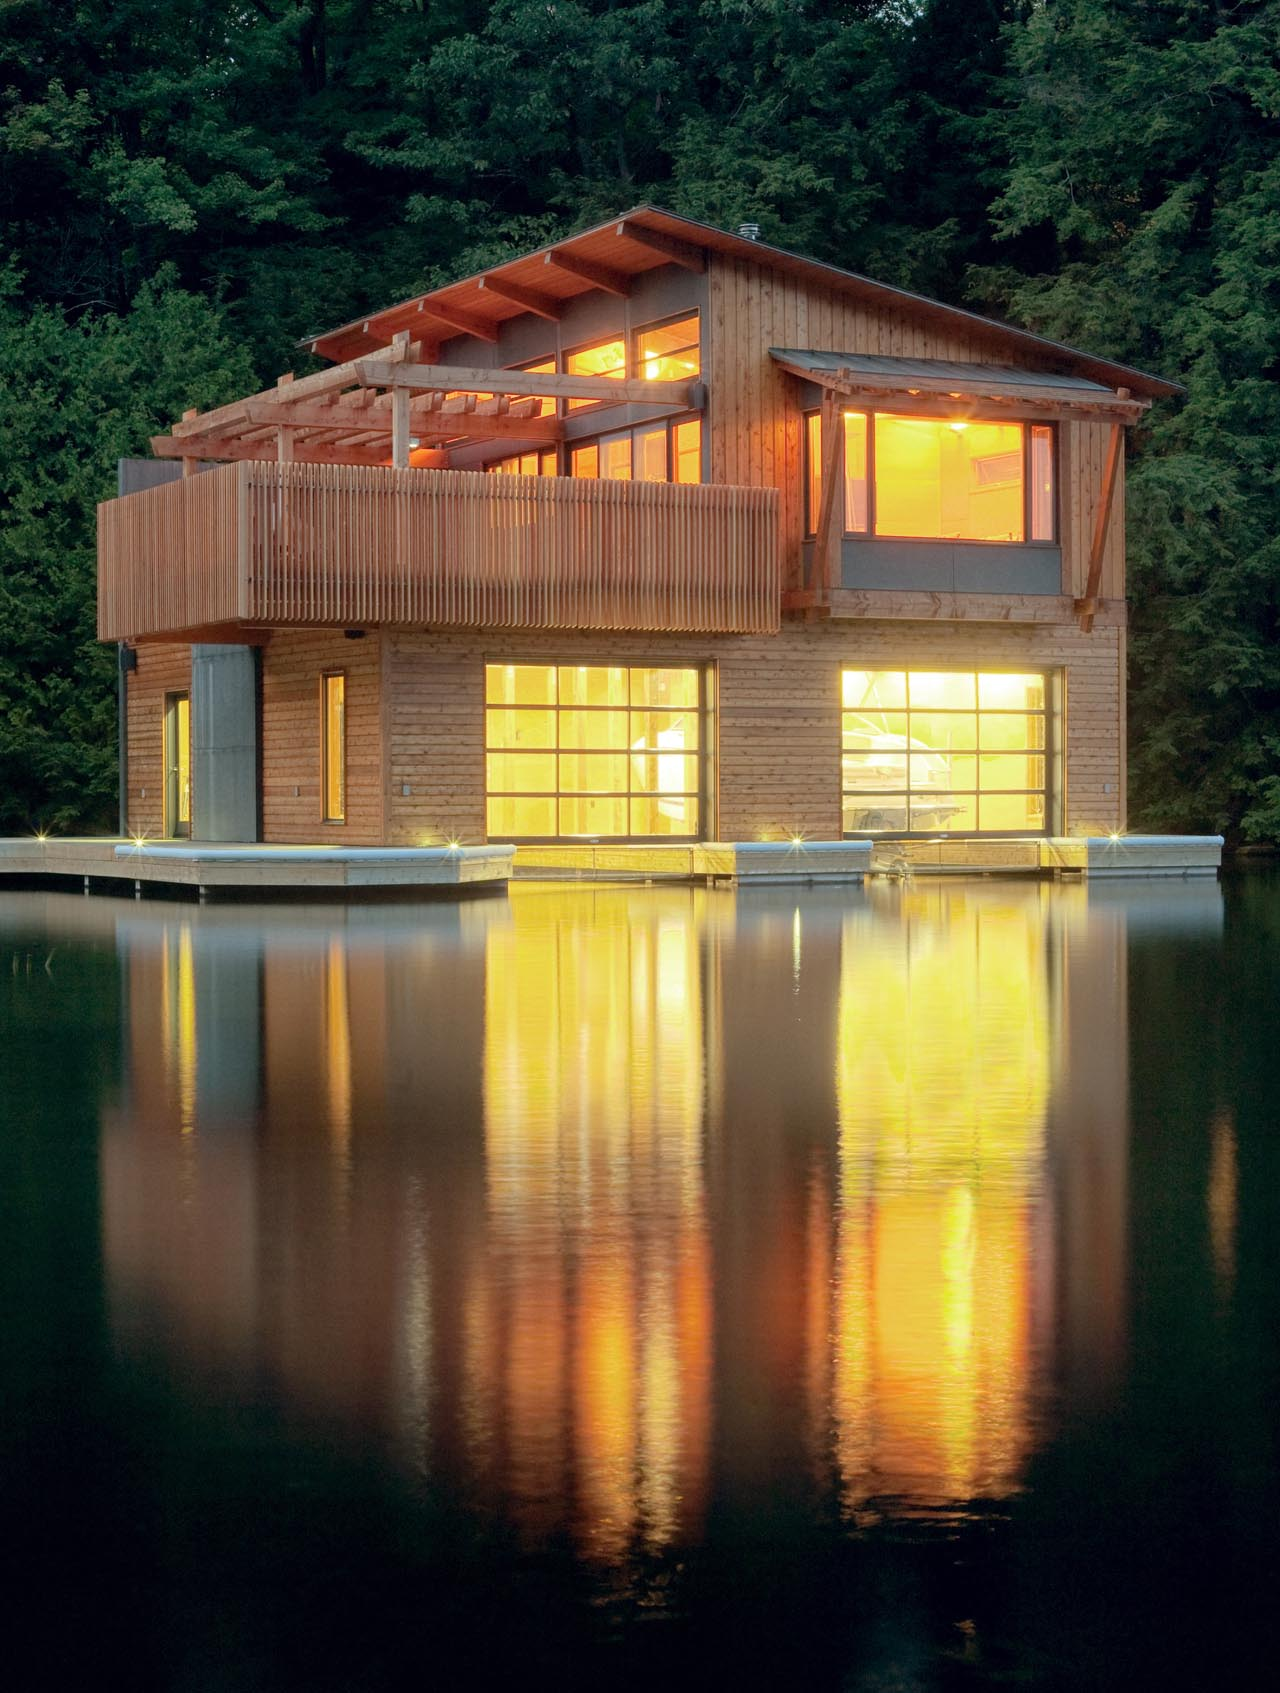 Lighting, Boathouse Renovation and Extension in Muskoka Lakes, Ontario